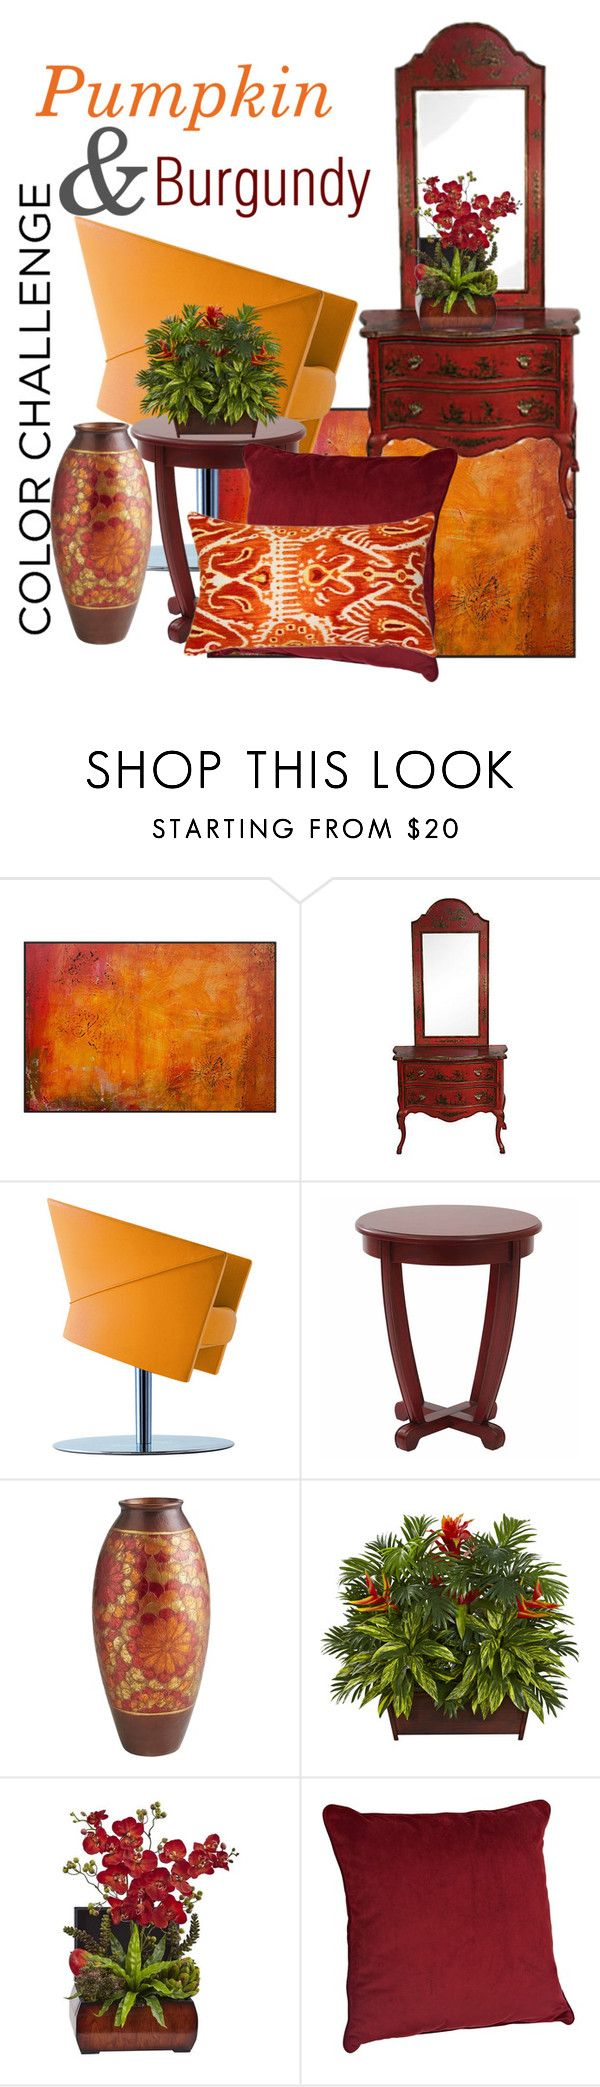 """""""Asian flair"""" by daincyng ❤ liked on Polyvore featuring interior, interiors, interior design, home, home decor, interior decorating, Pier 1 Imports, Nearly Natural, Pillow Decor and colorchallenge"""